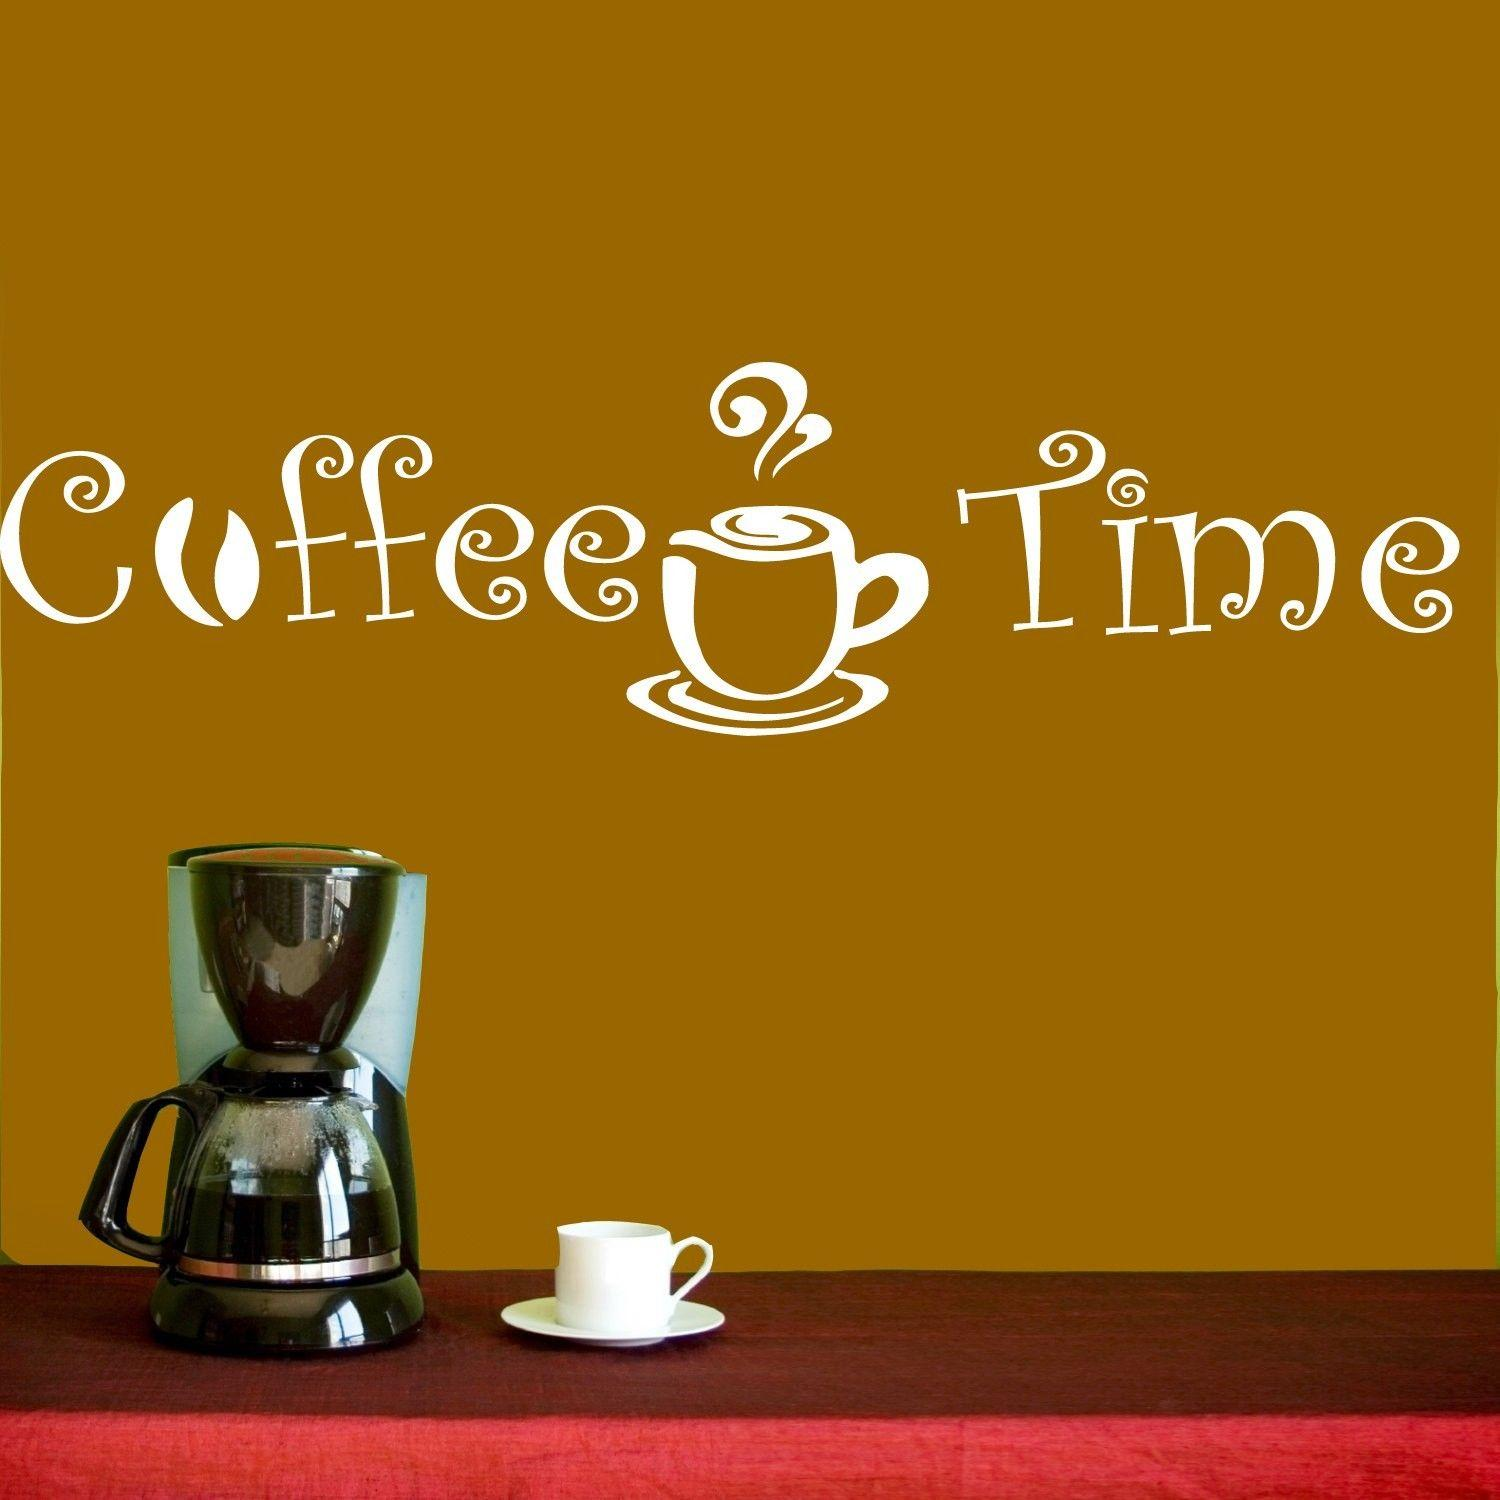 Wall Stickers Coffee Time line